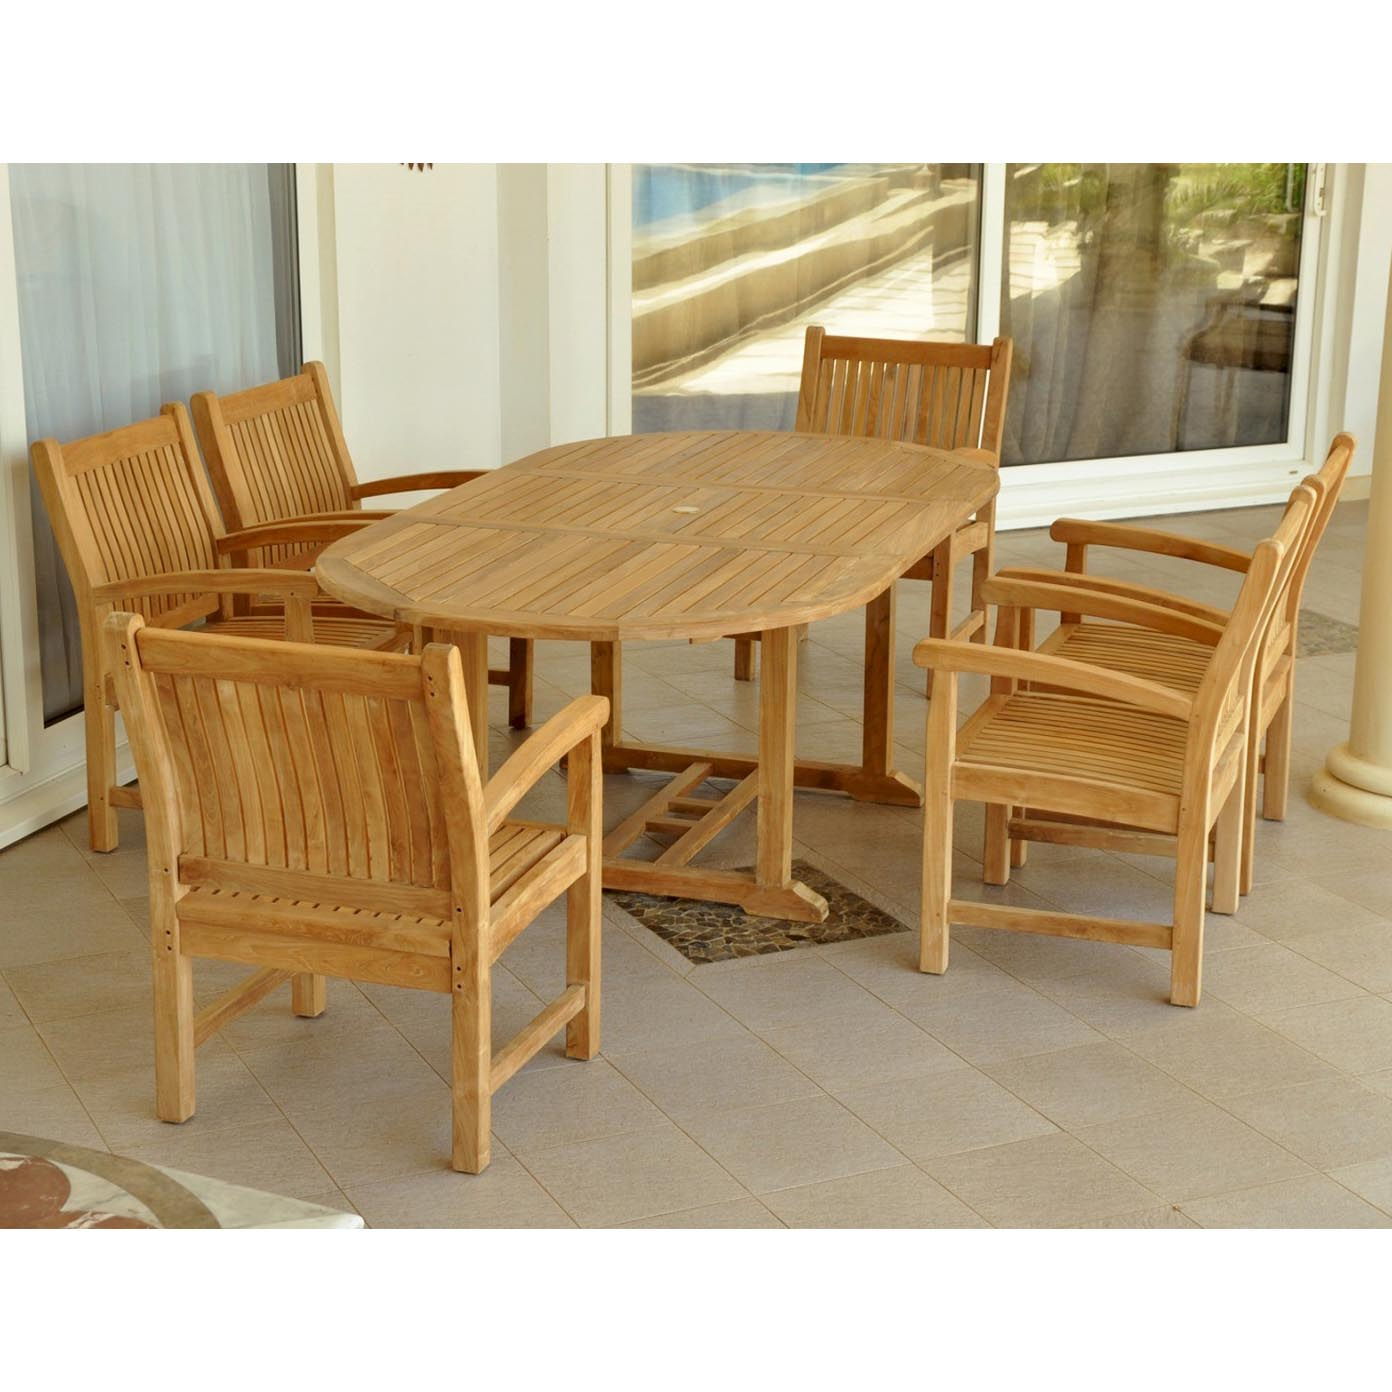 Purchase Teak Bahama Oval Table Sahara Dining Arm Chairs Product Photo